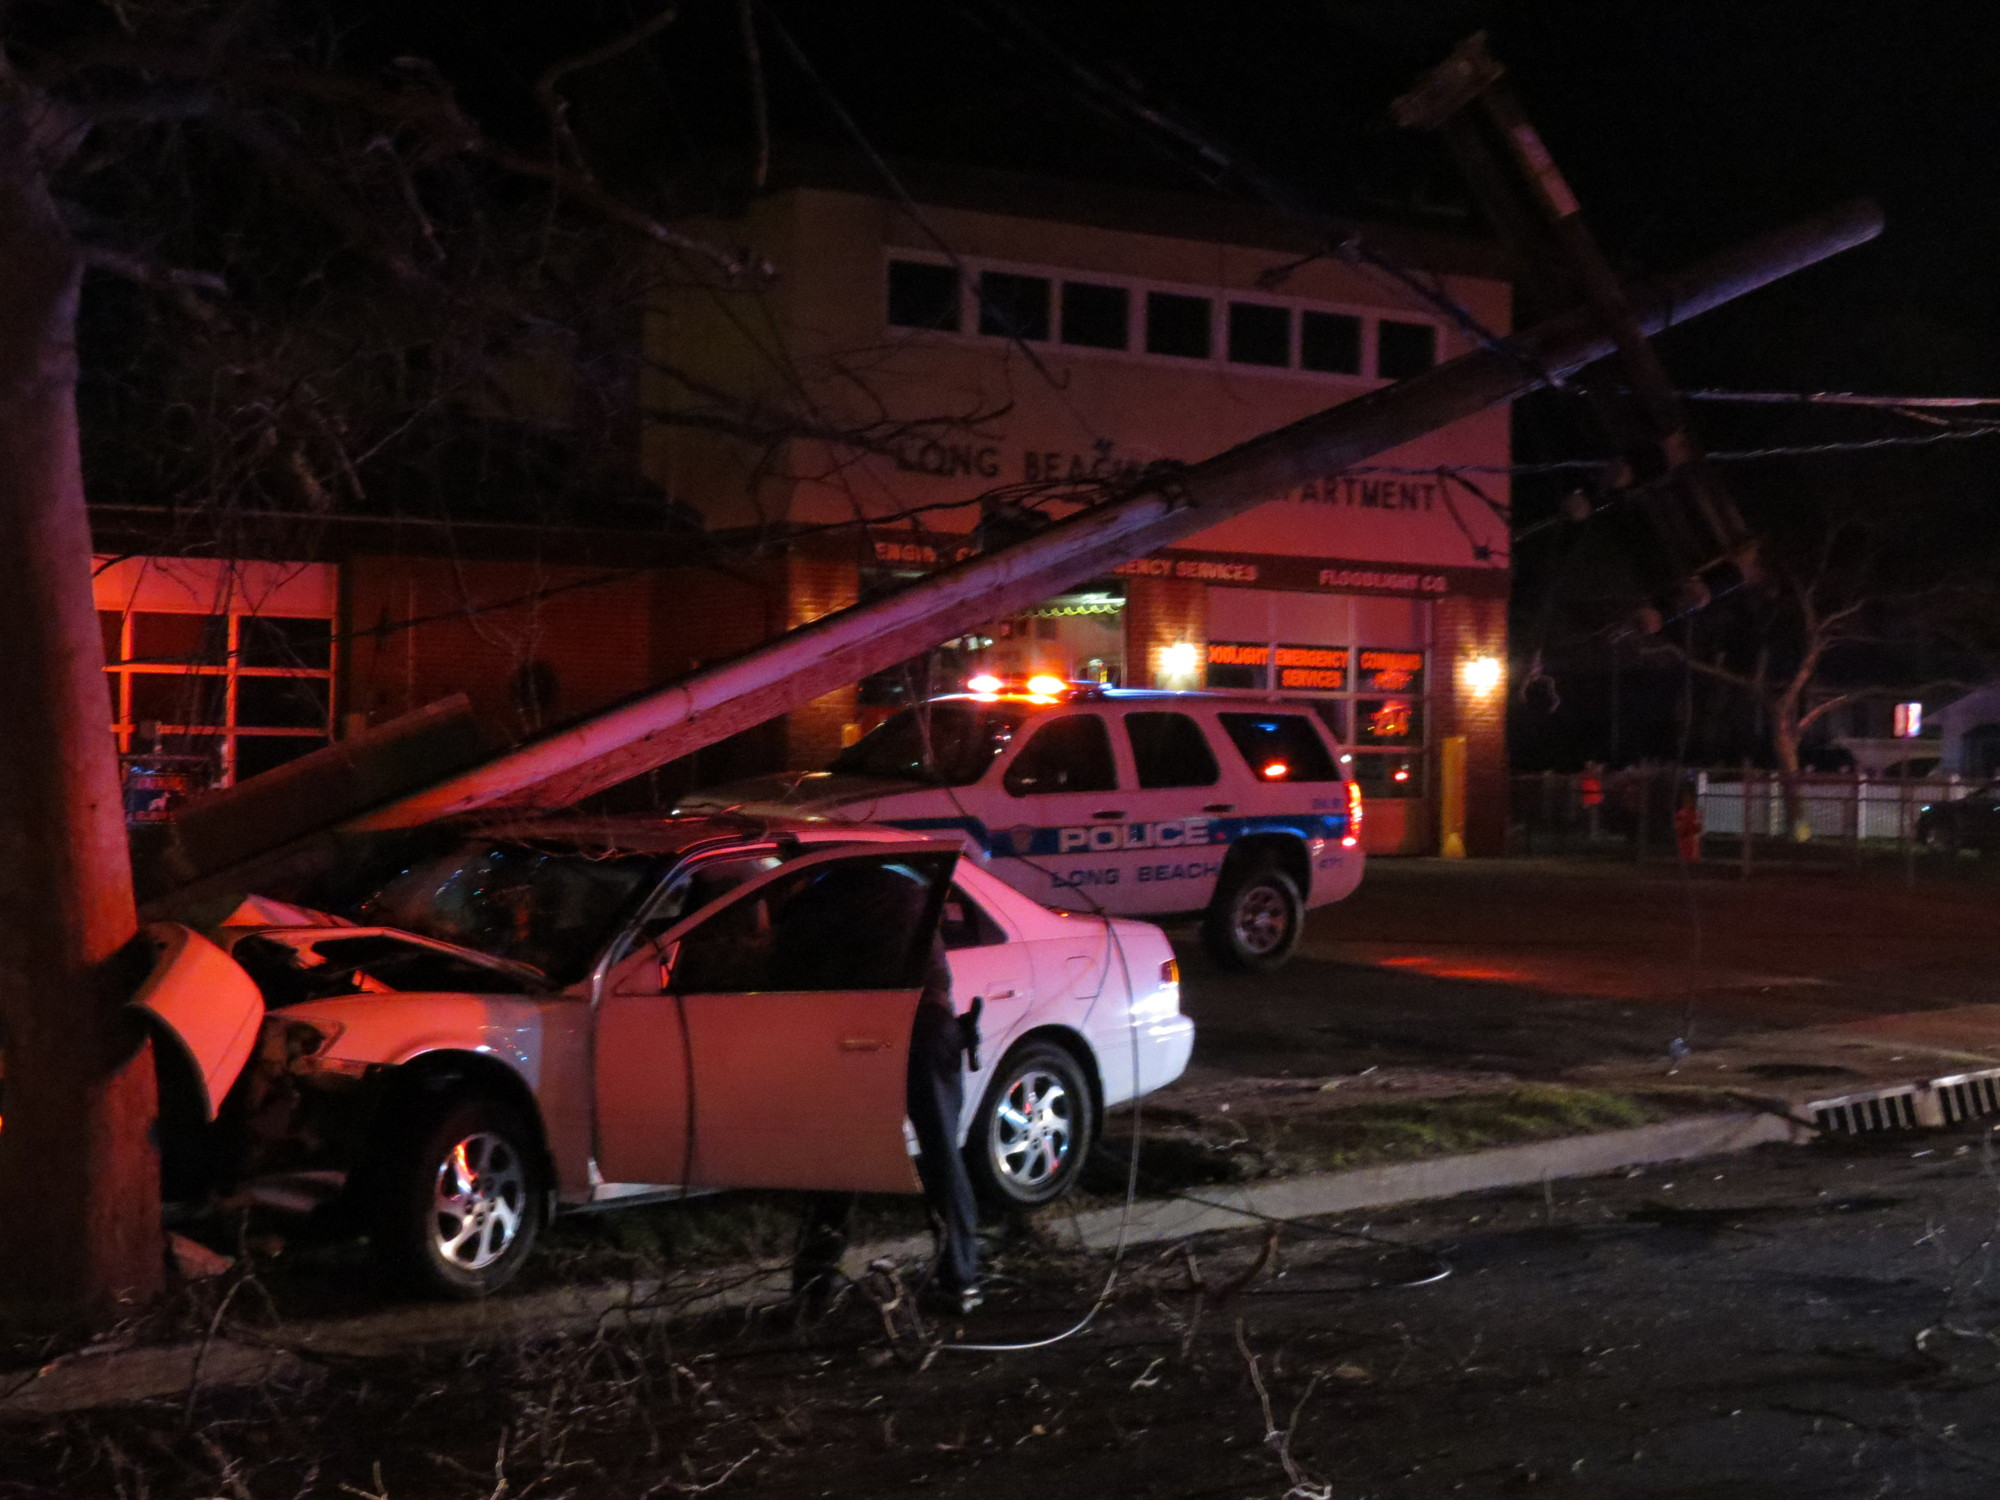 The car knocked over a electrical pole in front of the Maple Boulevard firehouse, and PSEG crews were called in to make the necessary repairs.